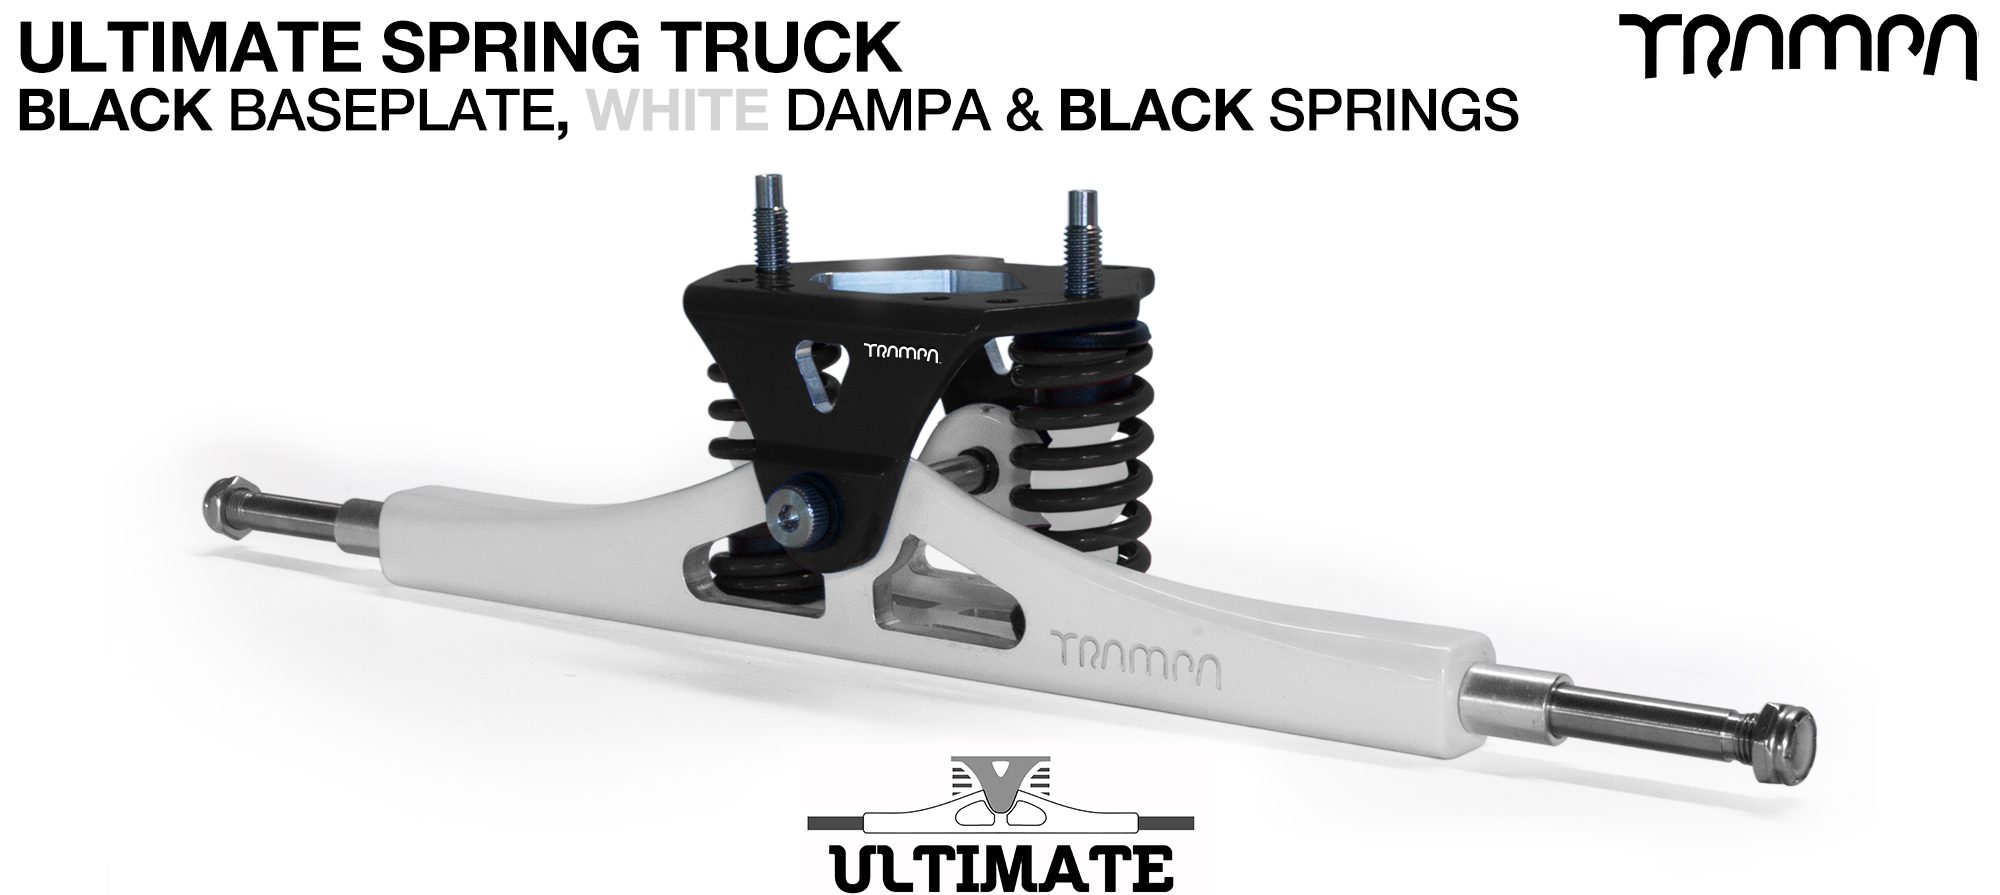 ULTIMATE ATB TRUCK - WHITE ATB Hanger with TITANIUM Axles & Kingpin & BLACK Baseplate